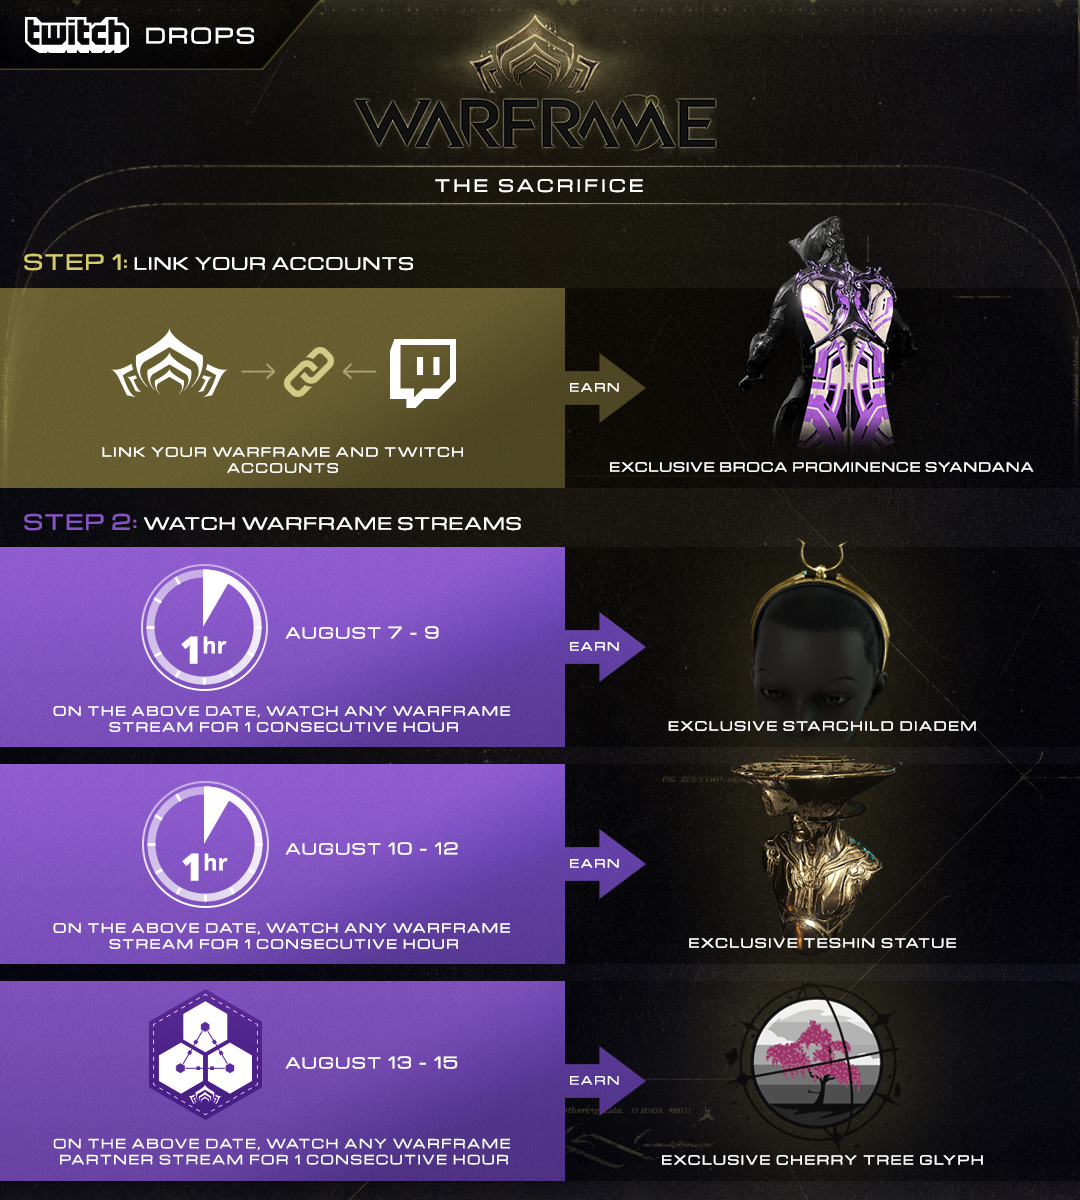 TheSacrifice_Console_TwitchDrops_Infogra